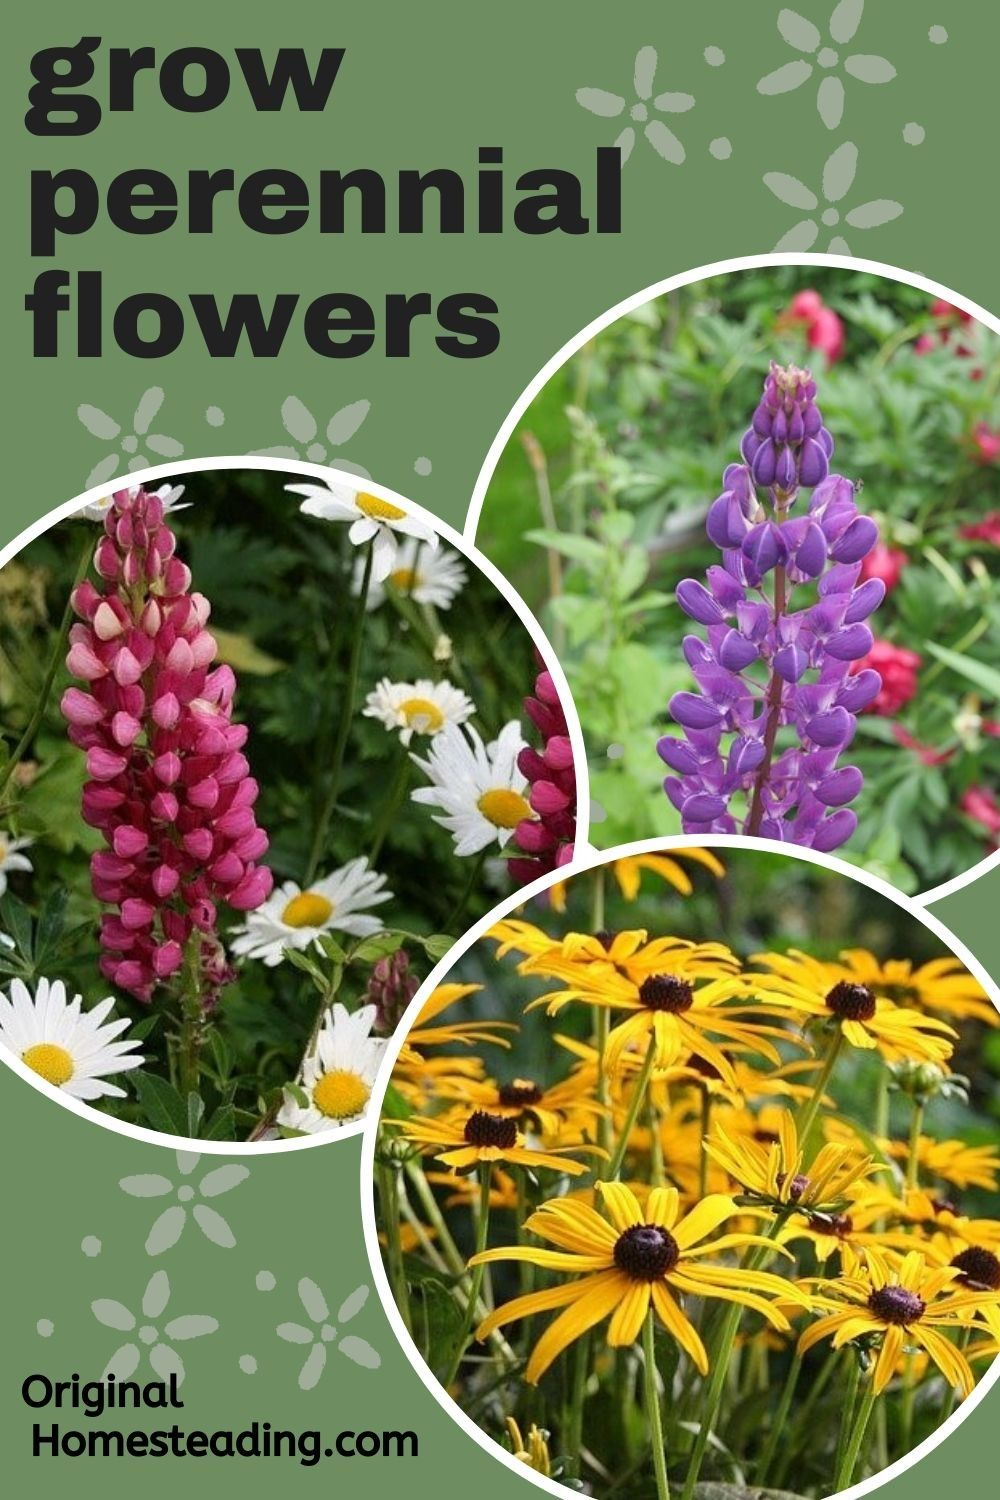 How To Grow Perennial Plants For Years Of Enjoyment In 2020 Flowers Perennials Perennial Plants Garden Flowers Perennials